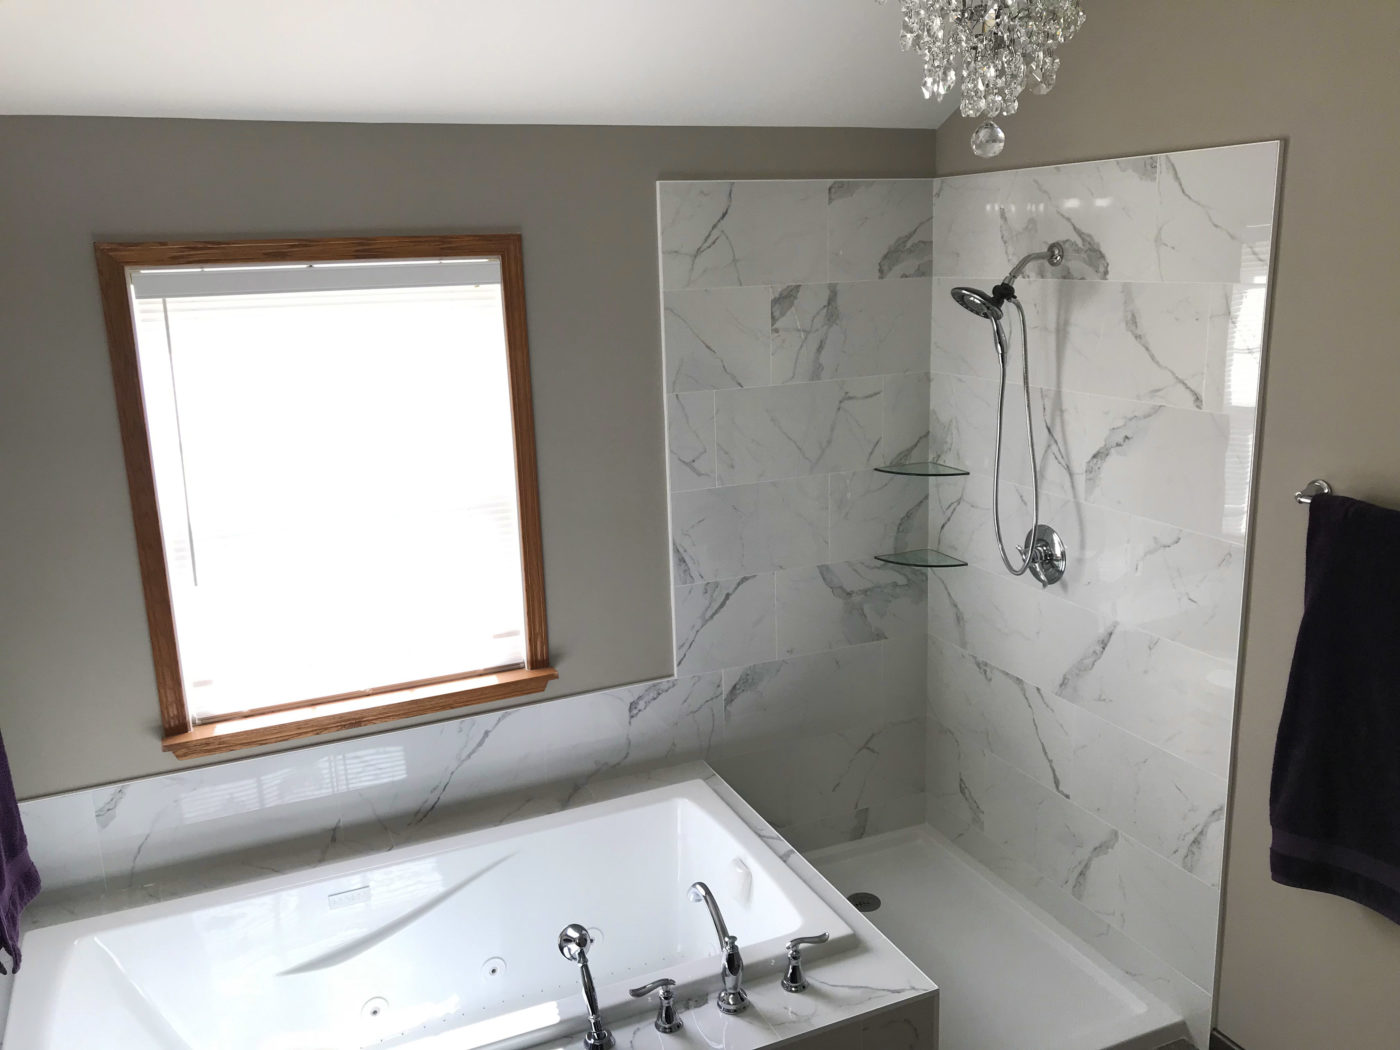 Bathroom Remodeling in Bartlett Illinois: a renovated bathroom with new tub, faucets, cabinets, countertop and more.